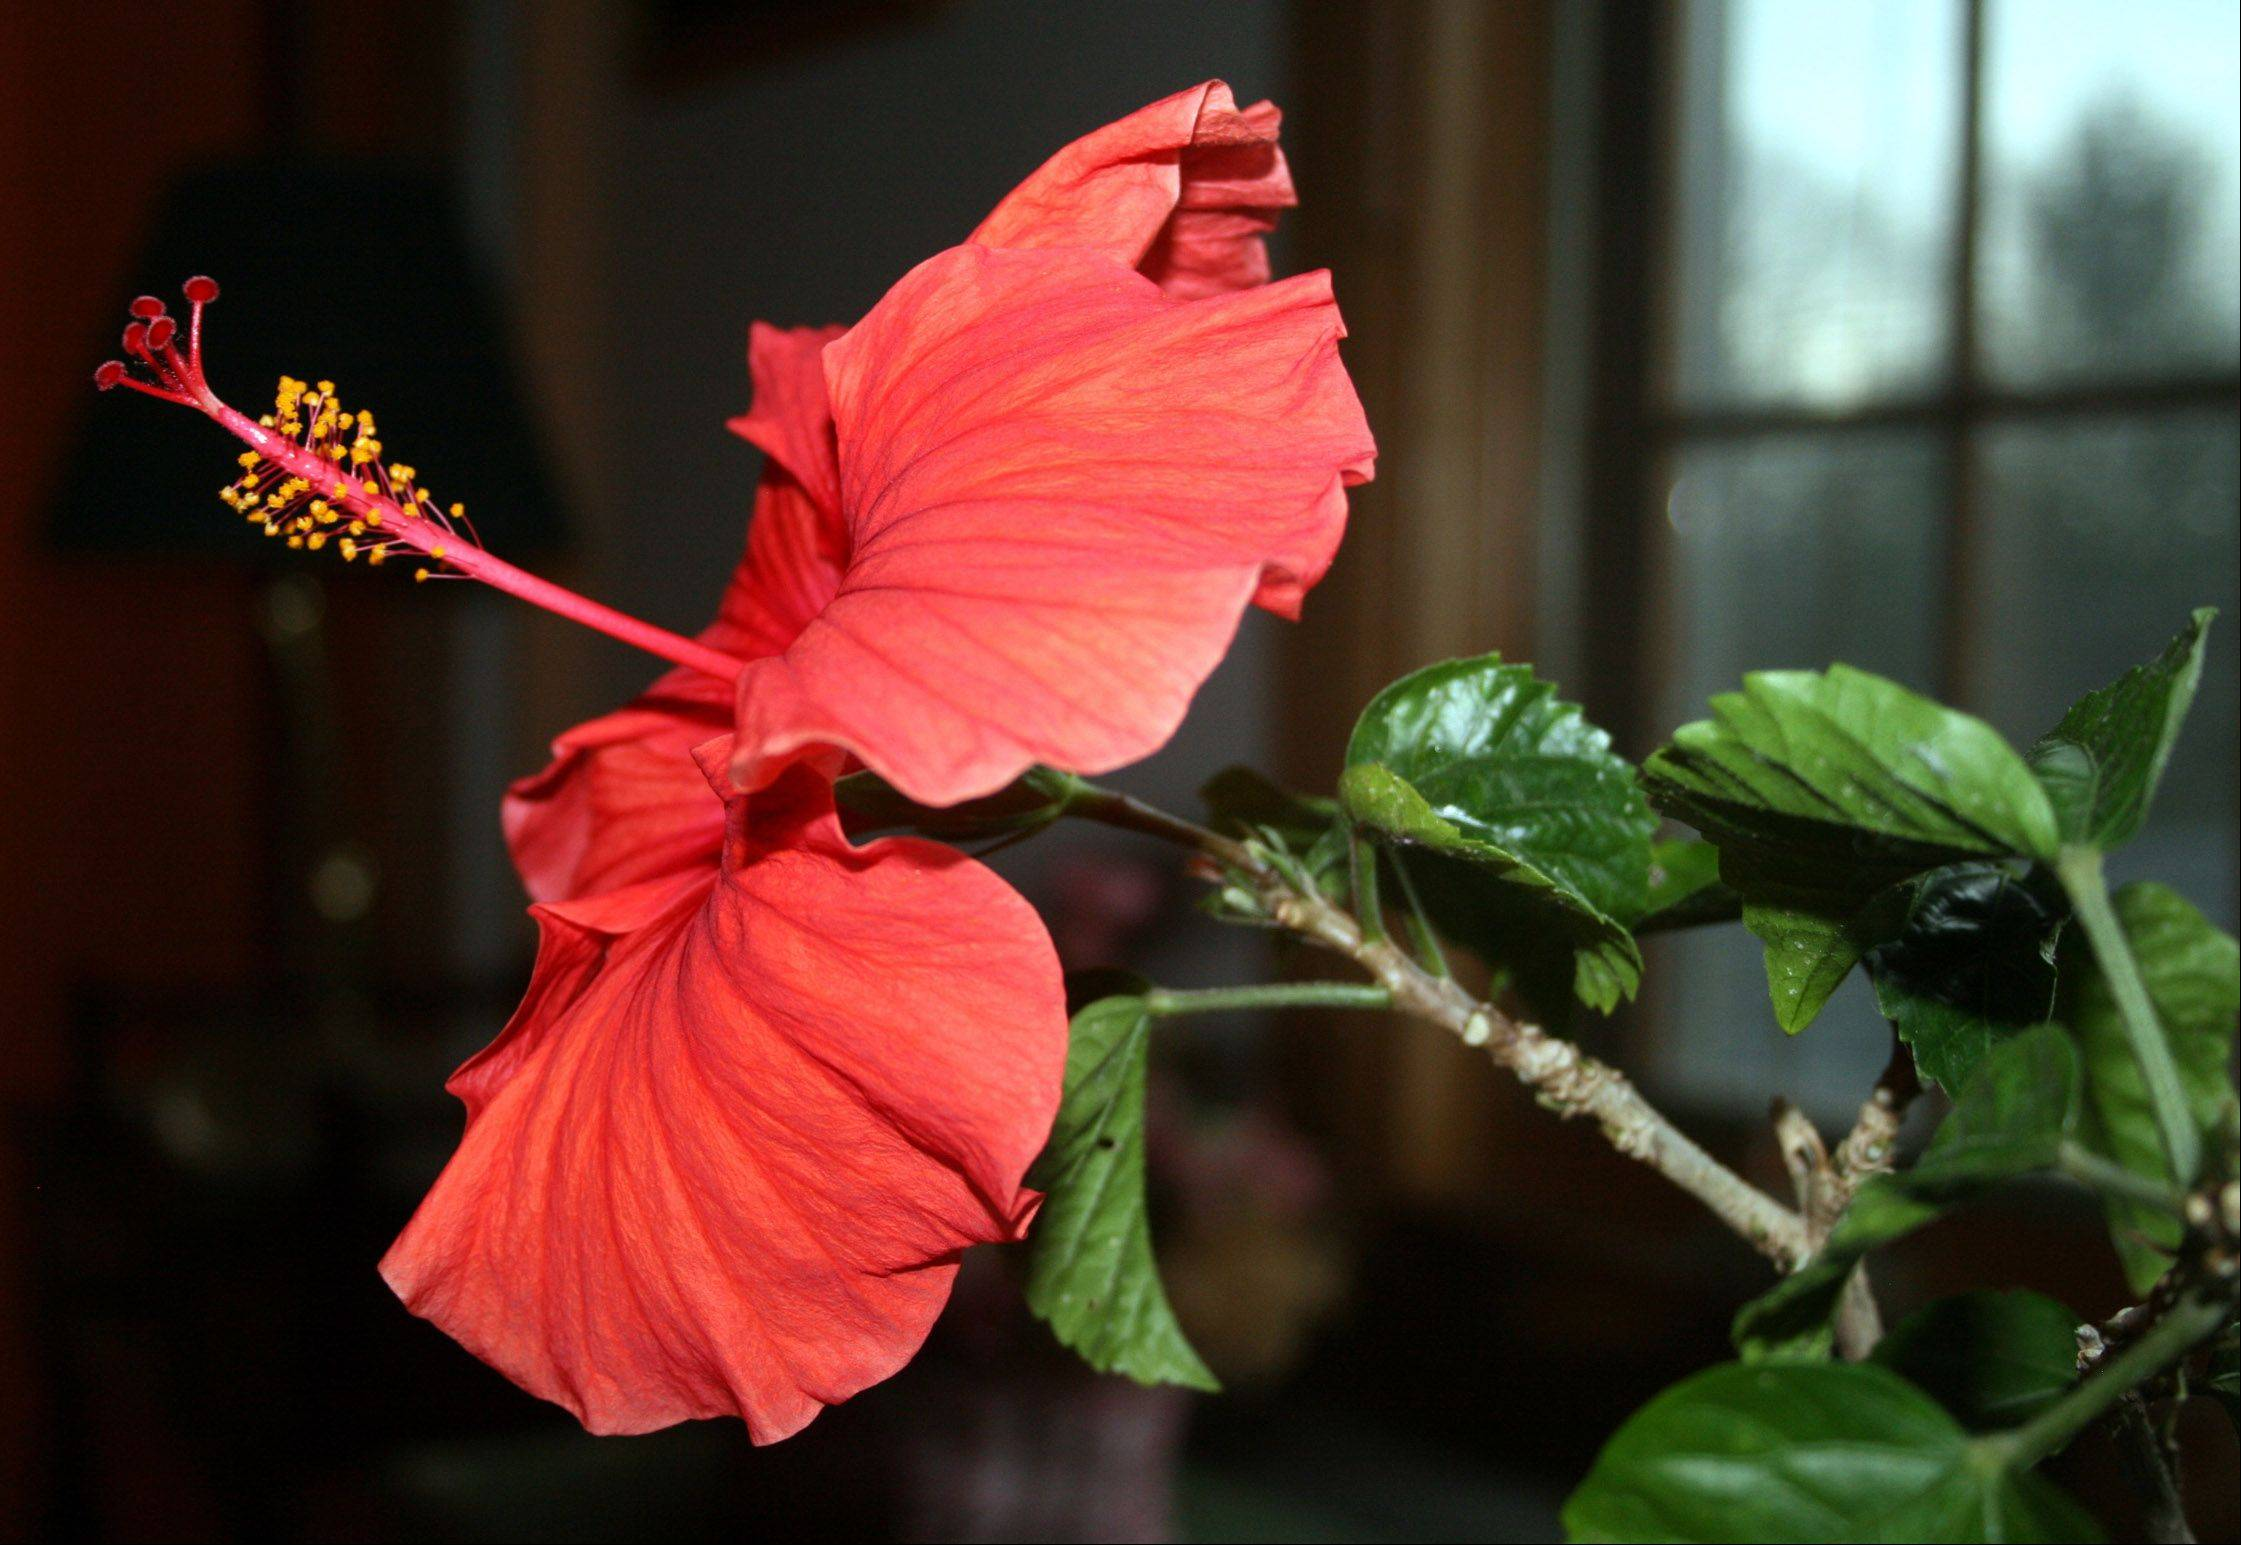 An indoor flower awakens as spring begins, even as winter snows fall outside.